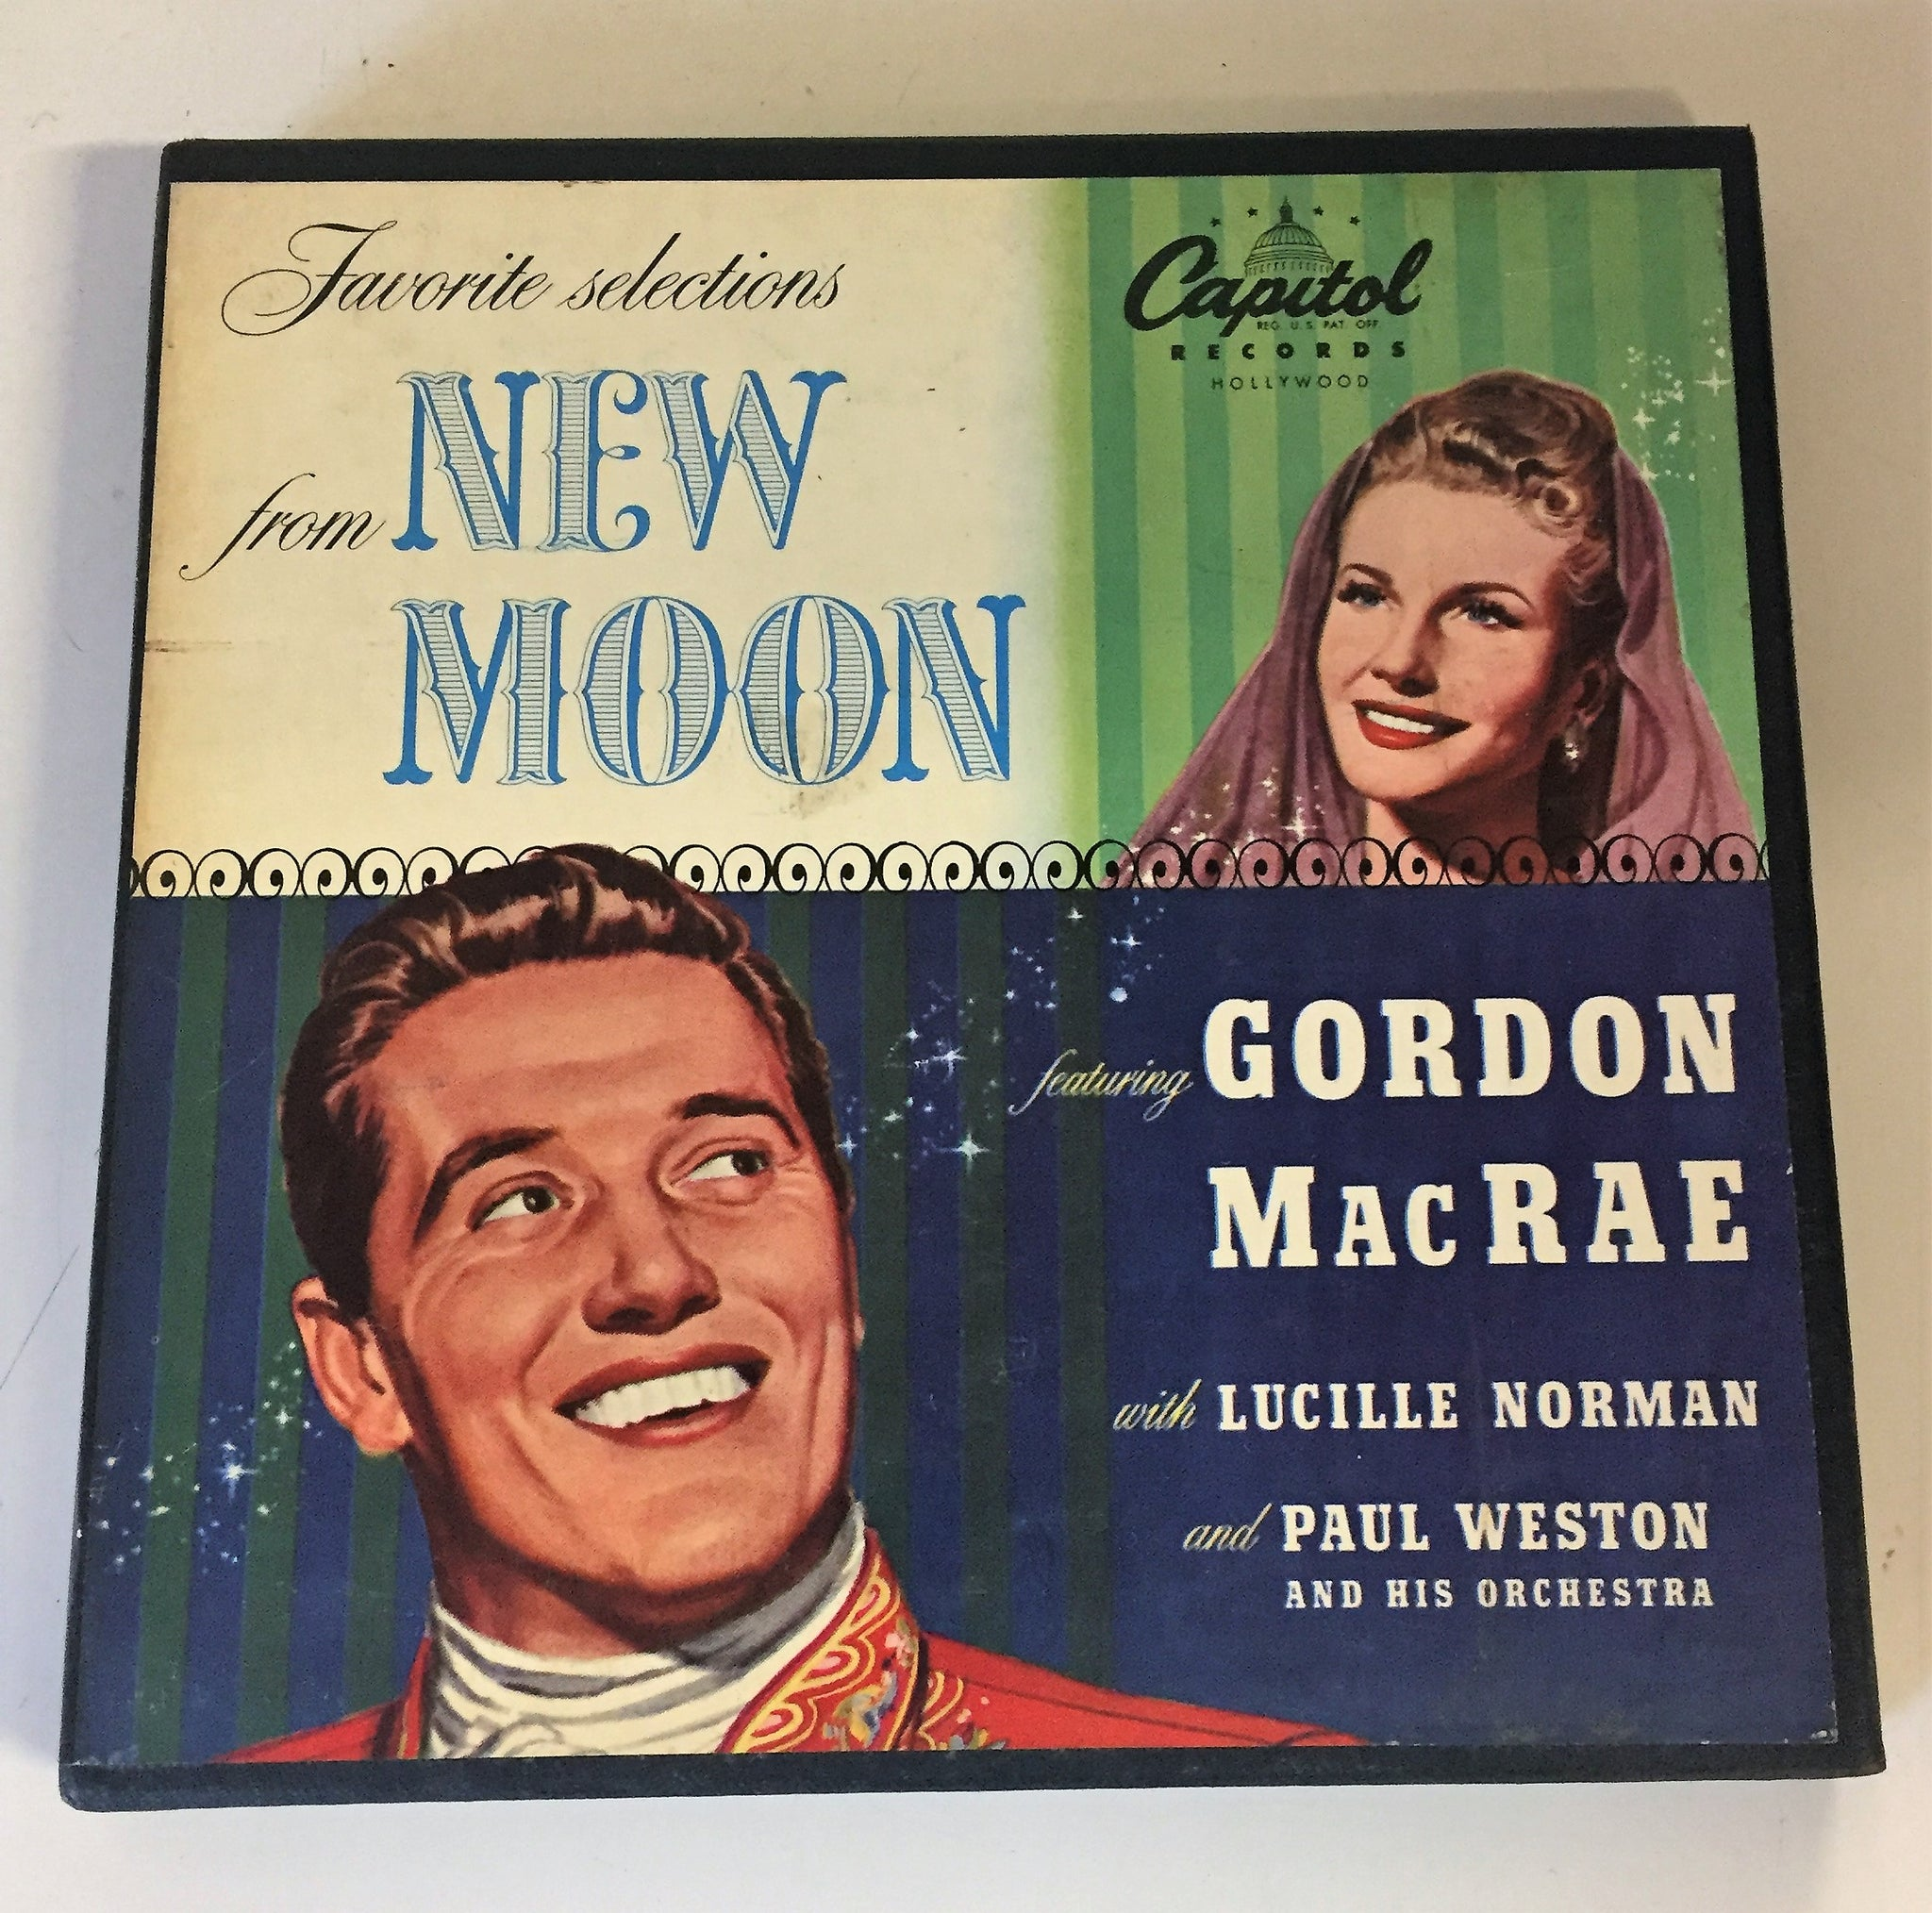 Vintage Favorite Selections From NEW MOON Gordon Mac Rae & Lucille Norman